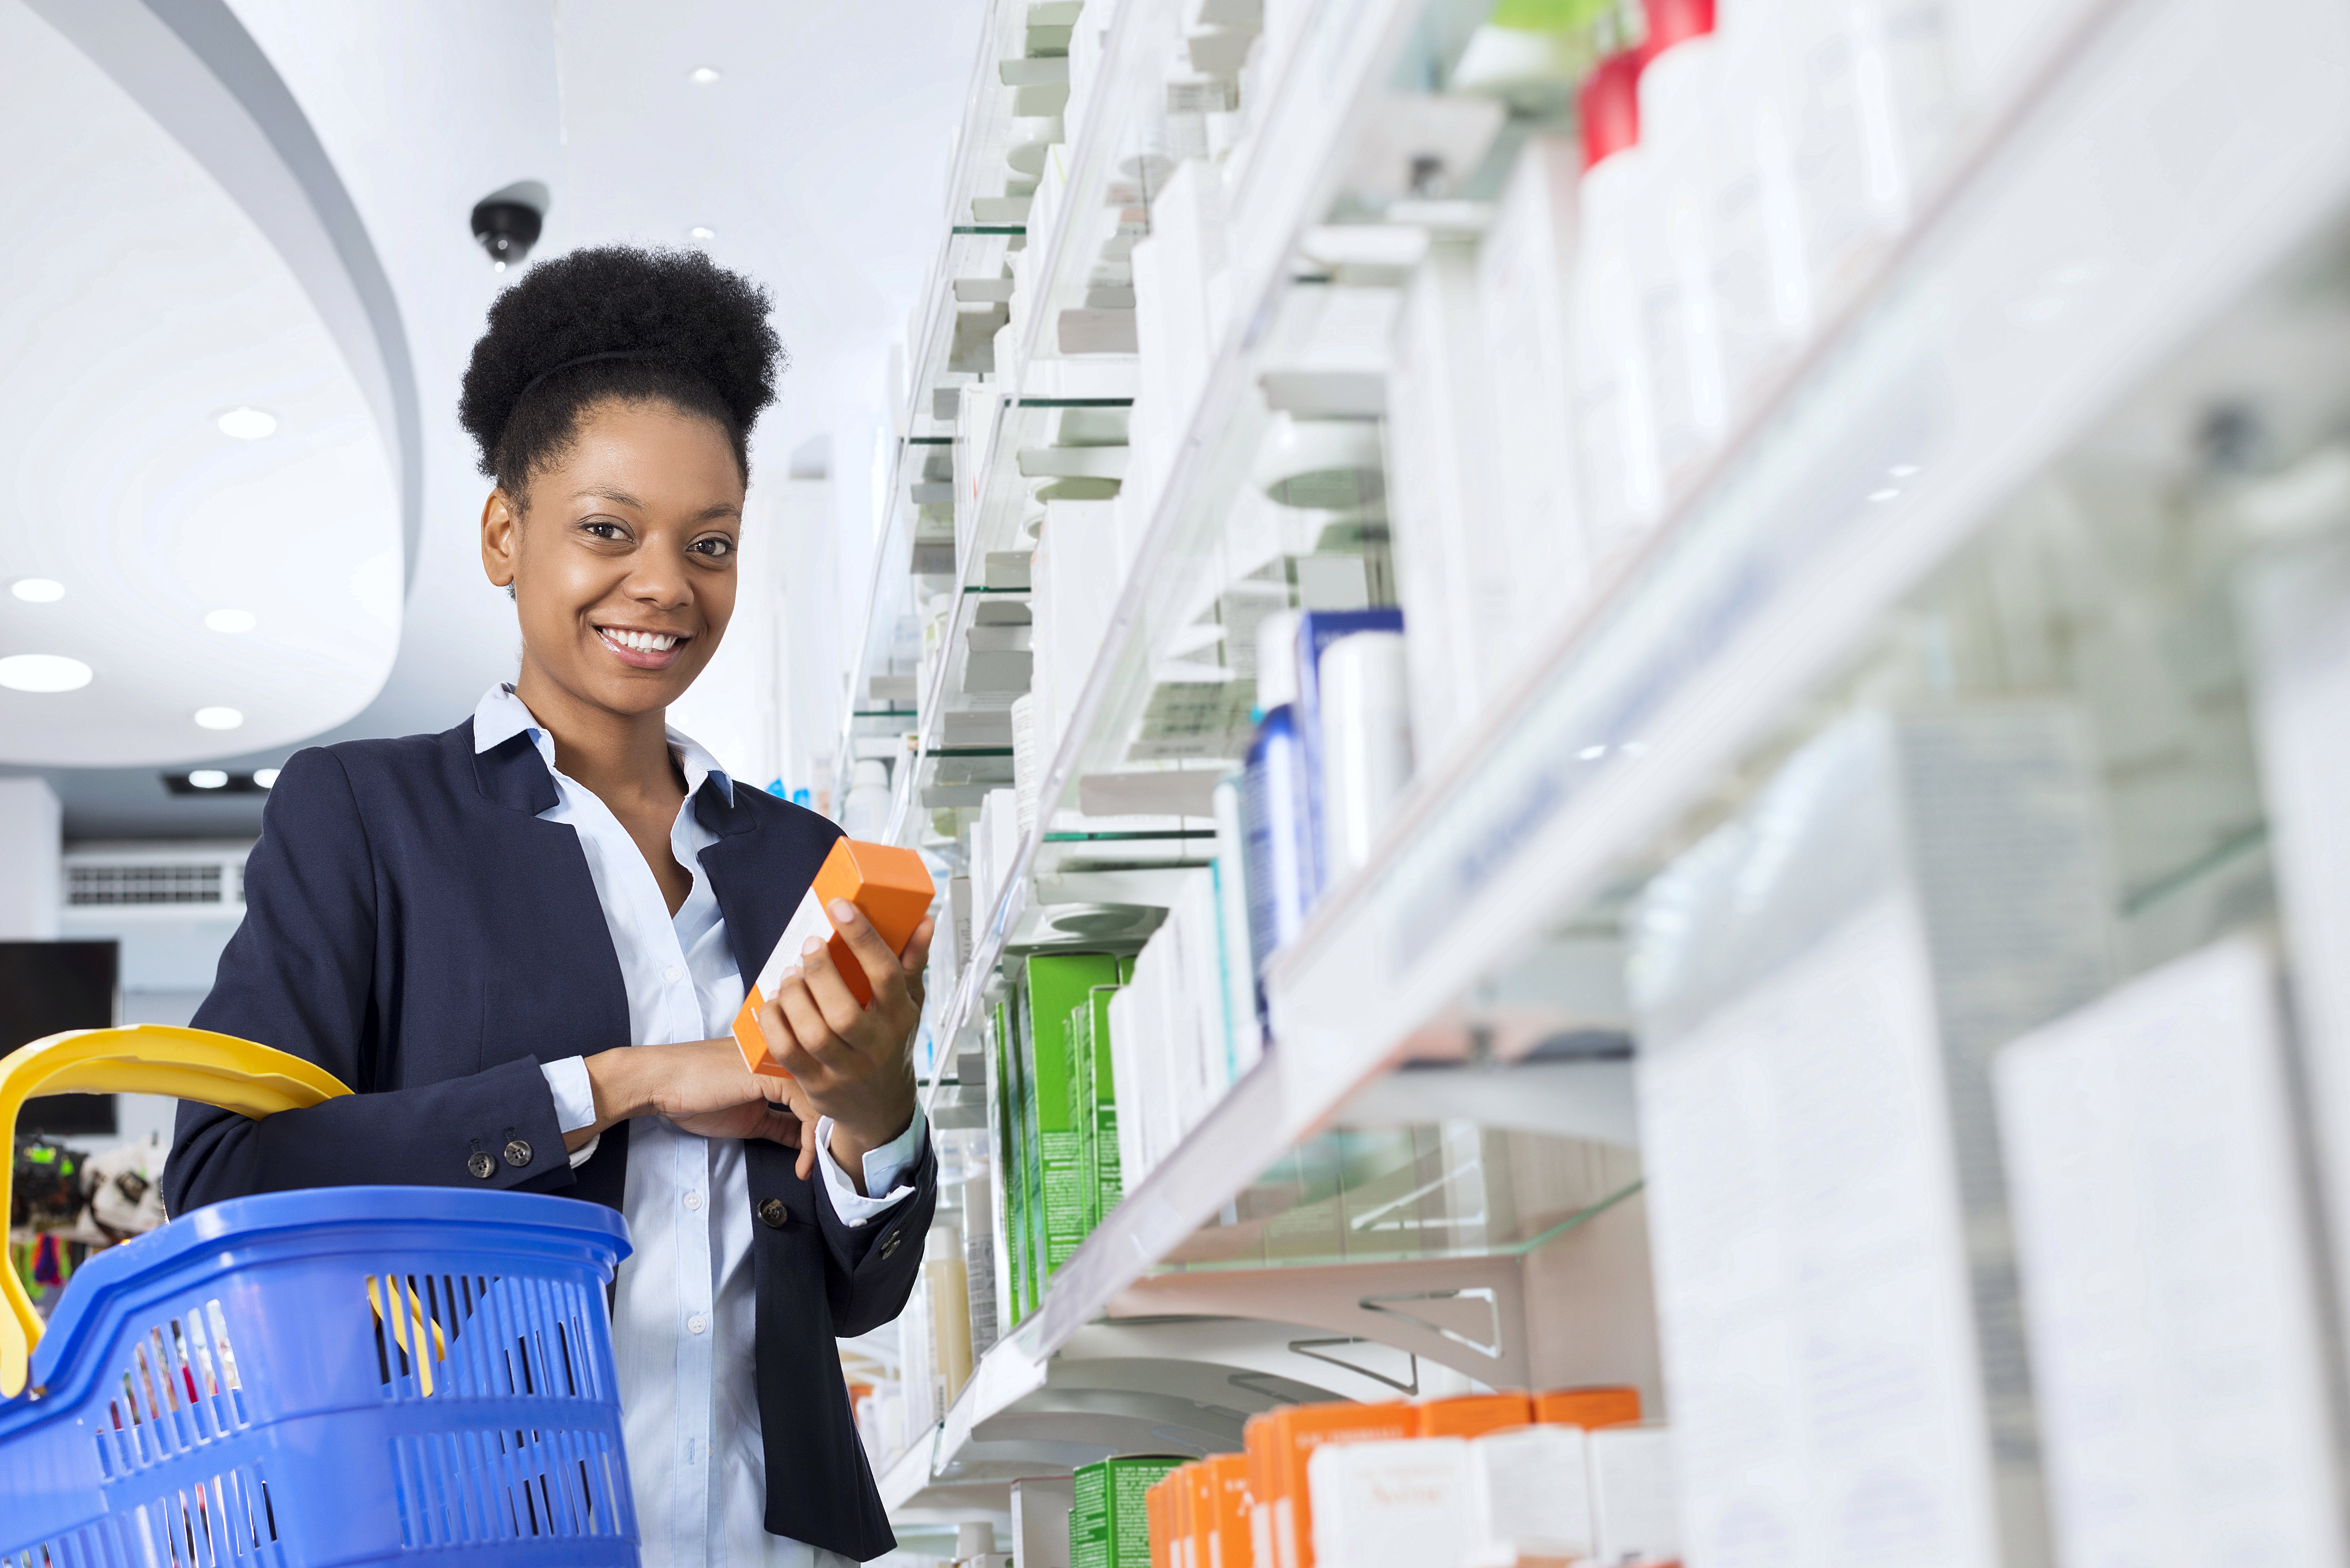 A woman buying medicines